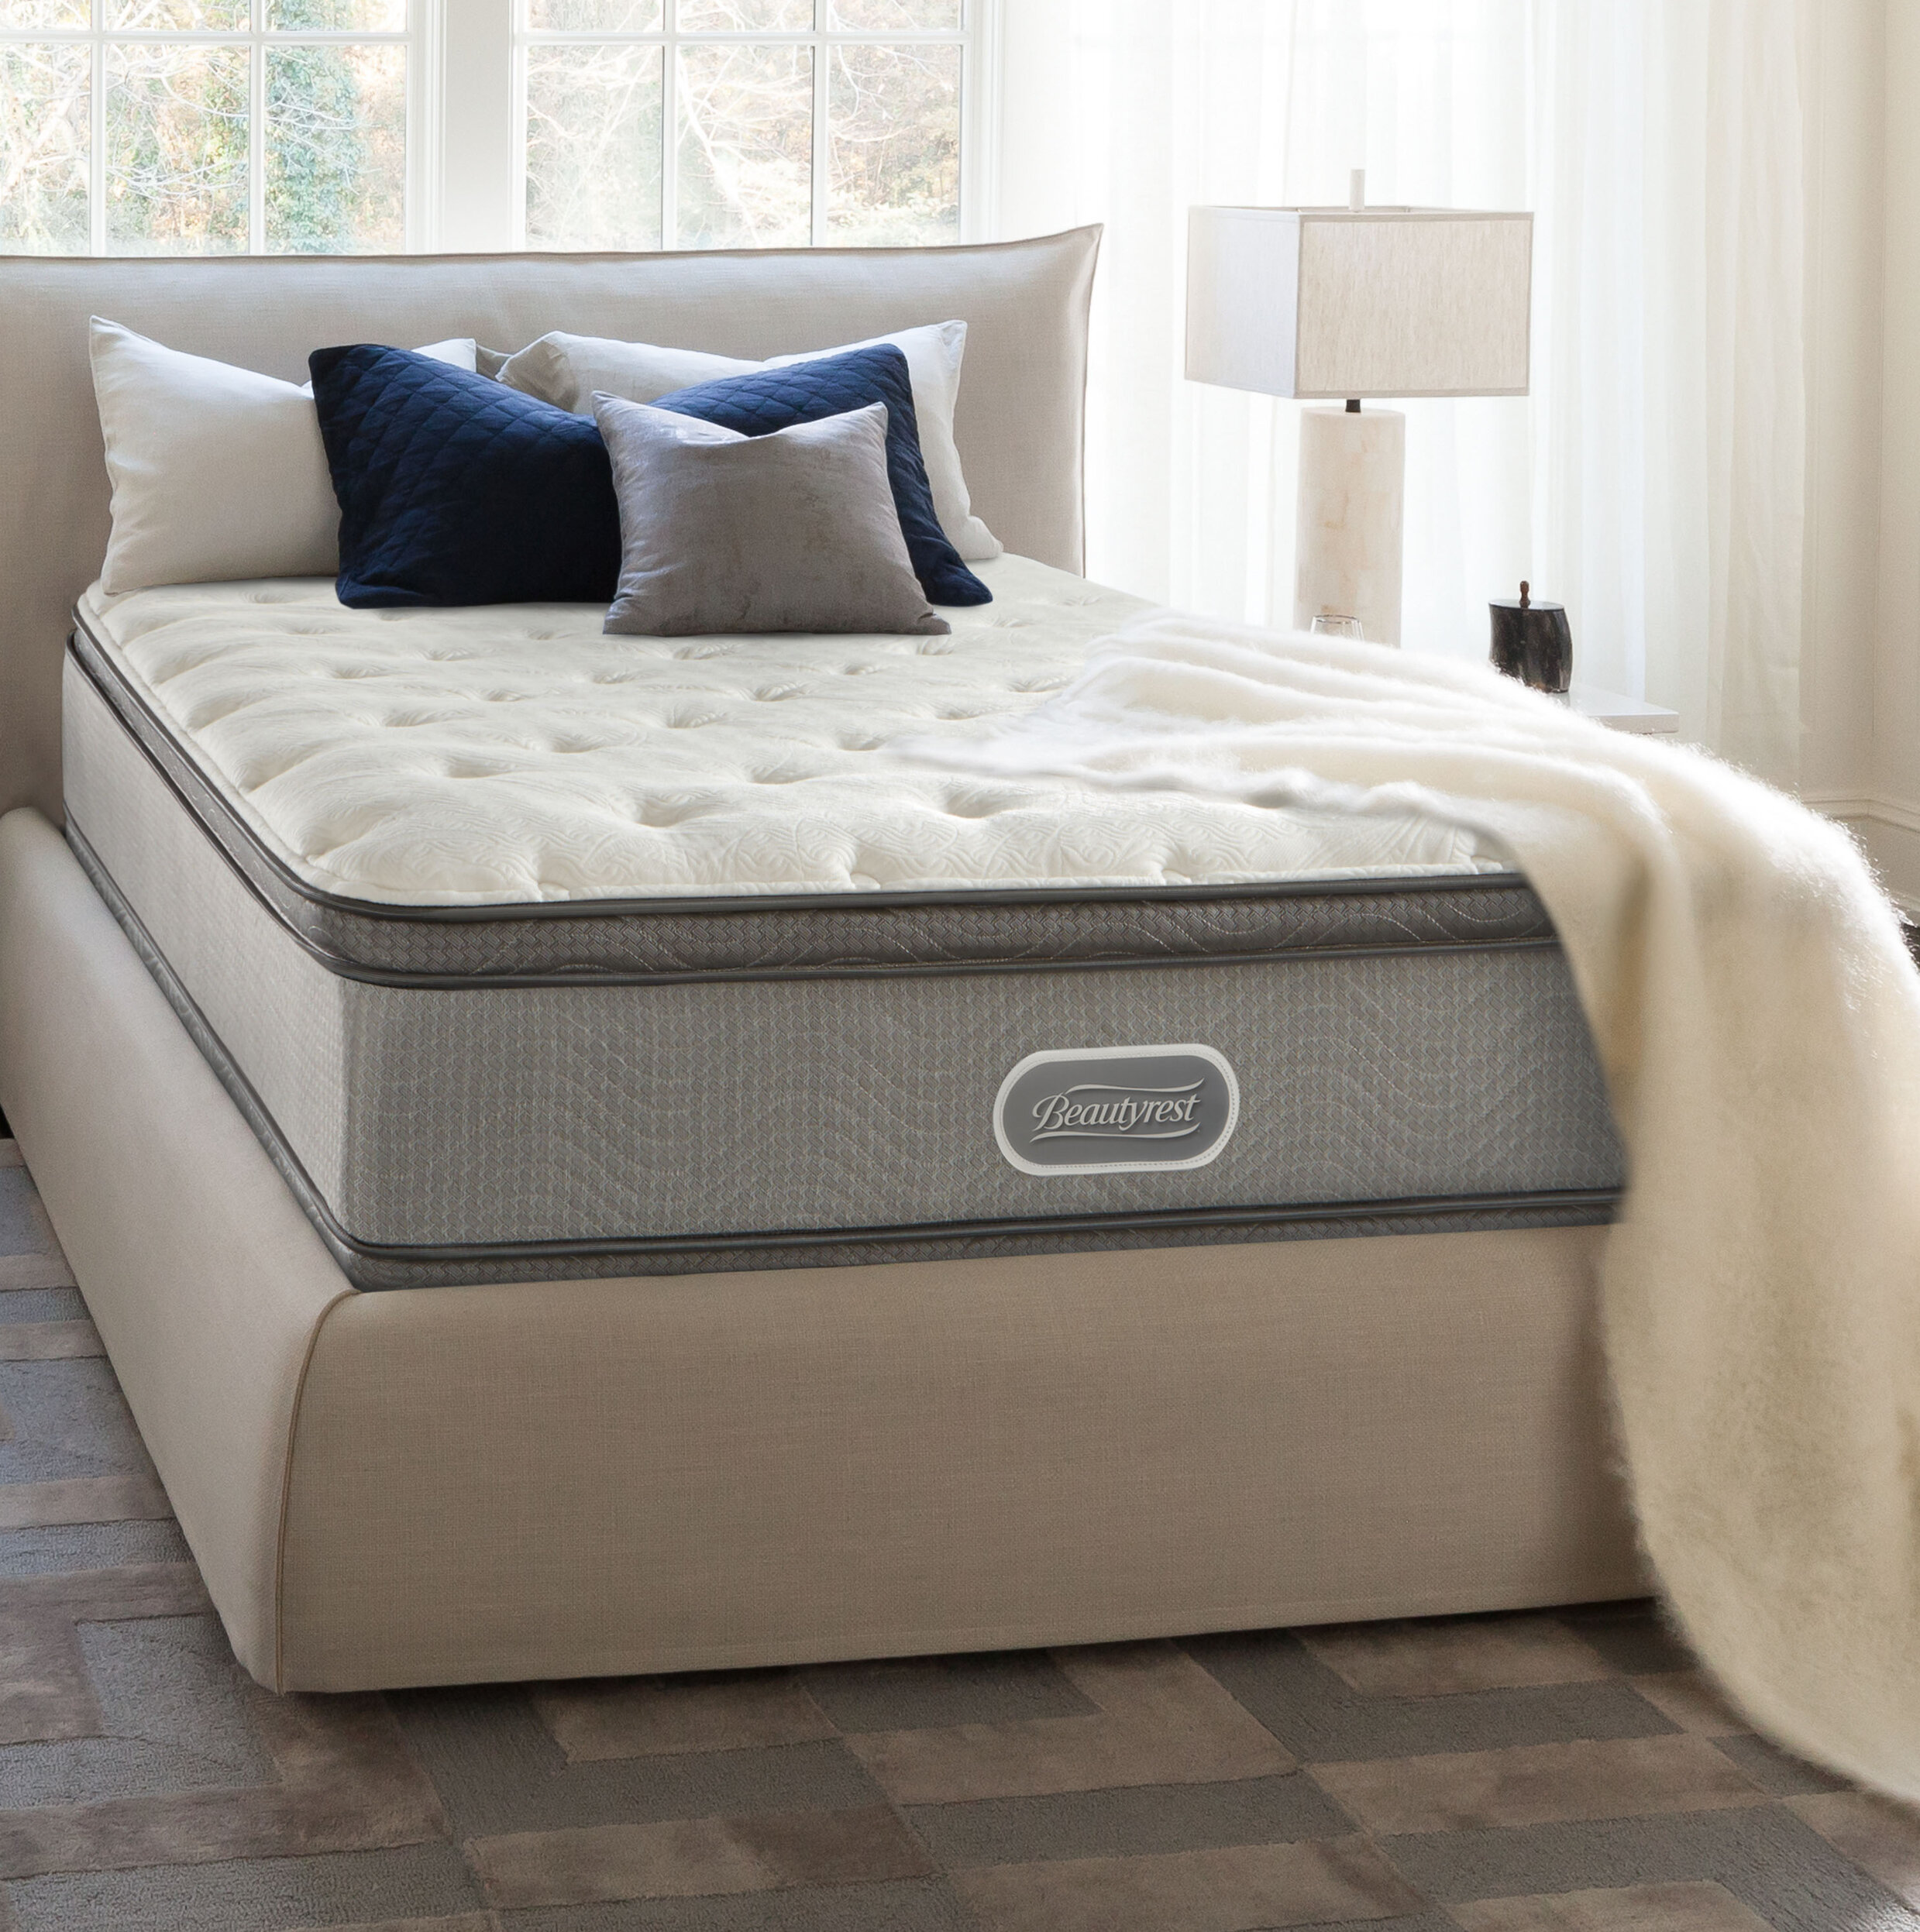 com product topper mattress dream spring top pillow slumber multiple reviews walmart sizes